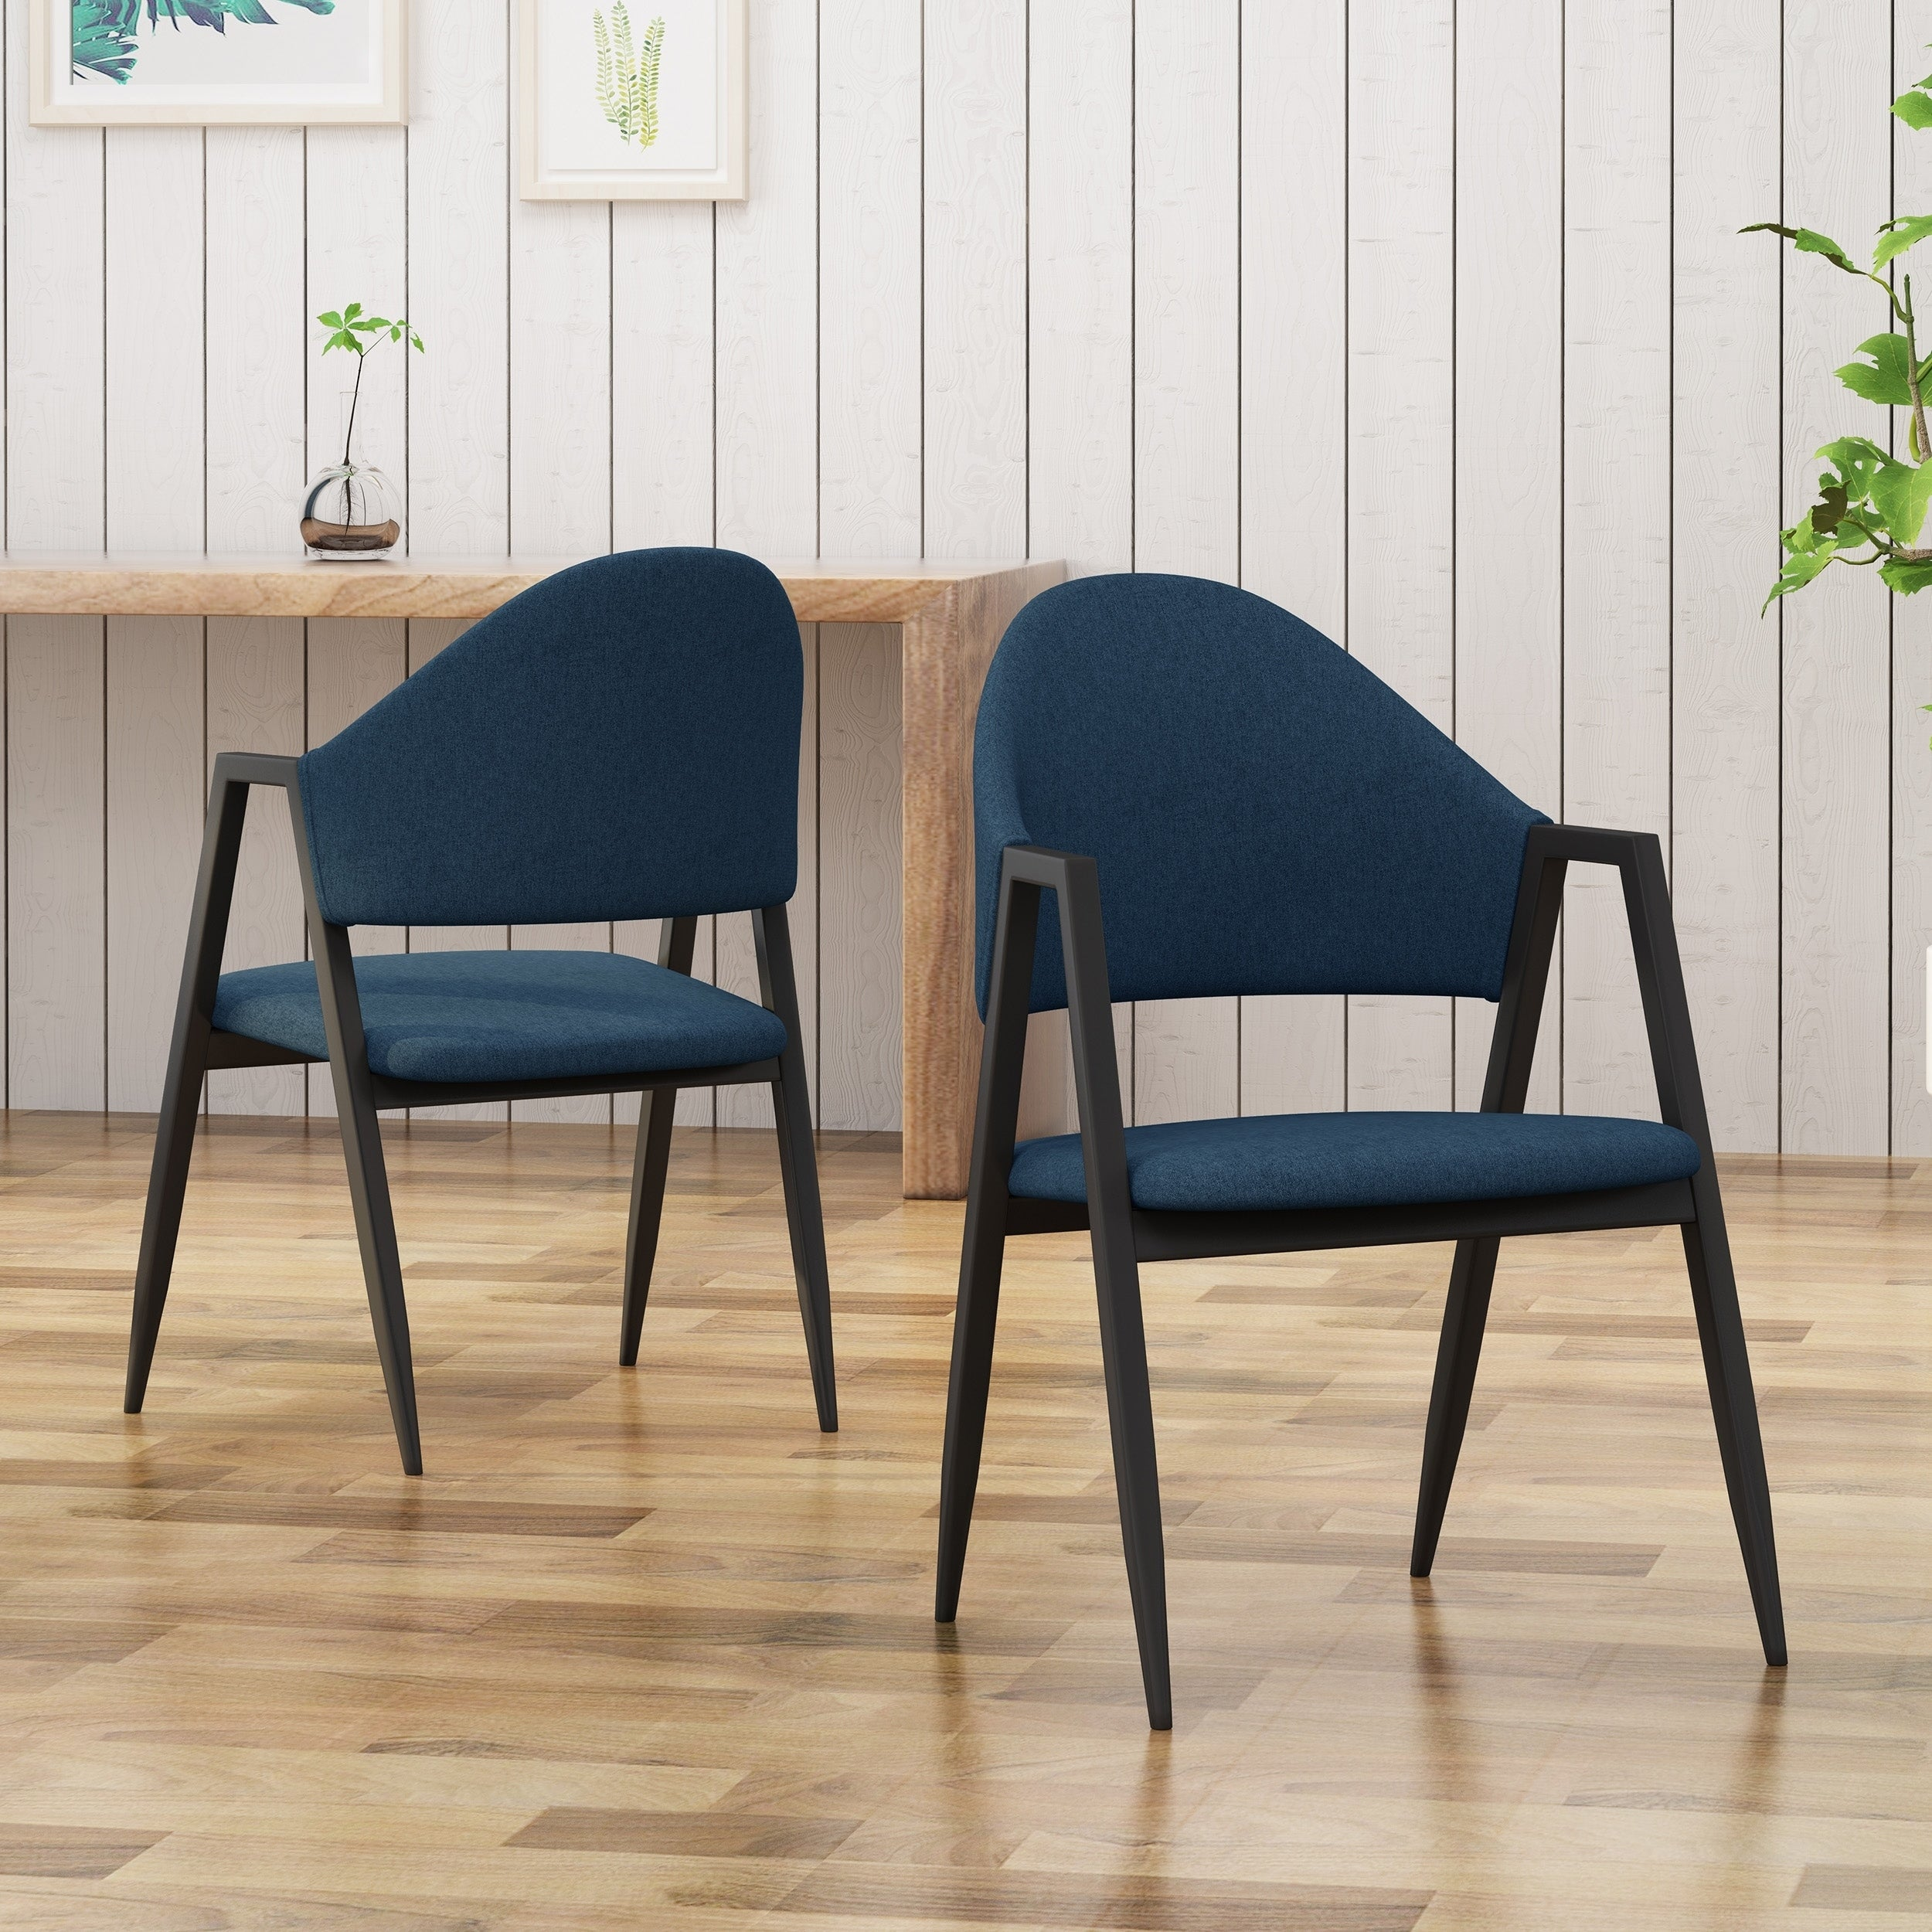 Shop elmhurst mid century modern iron legs open back dining chairs by christopher knight home on sale ships to canada overstock 23178224